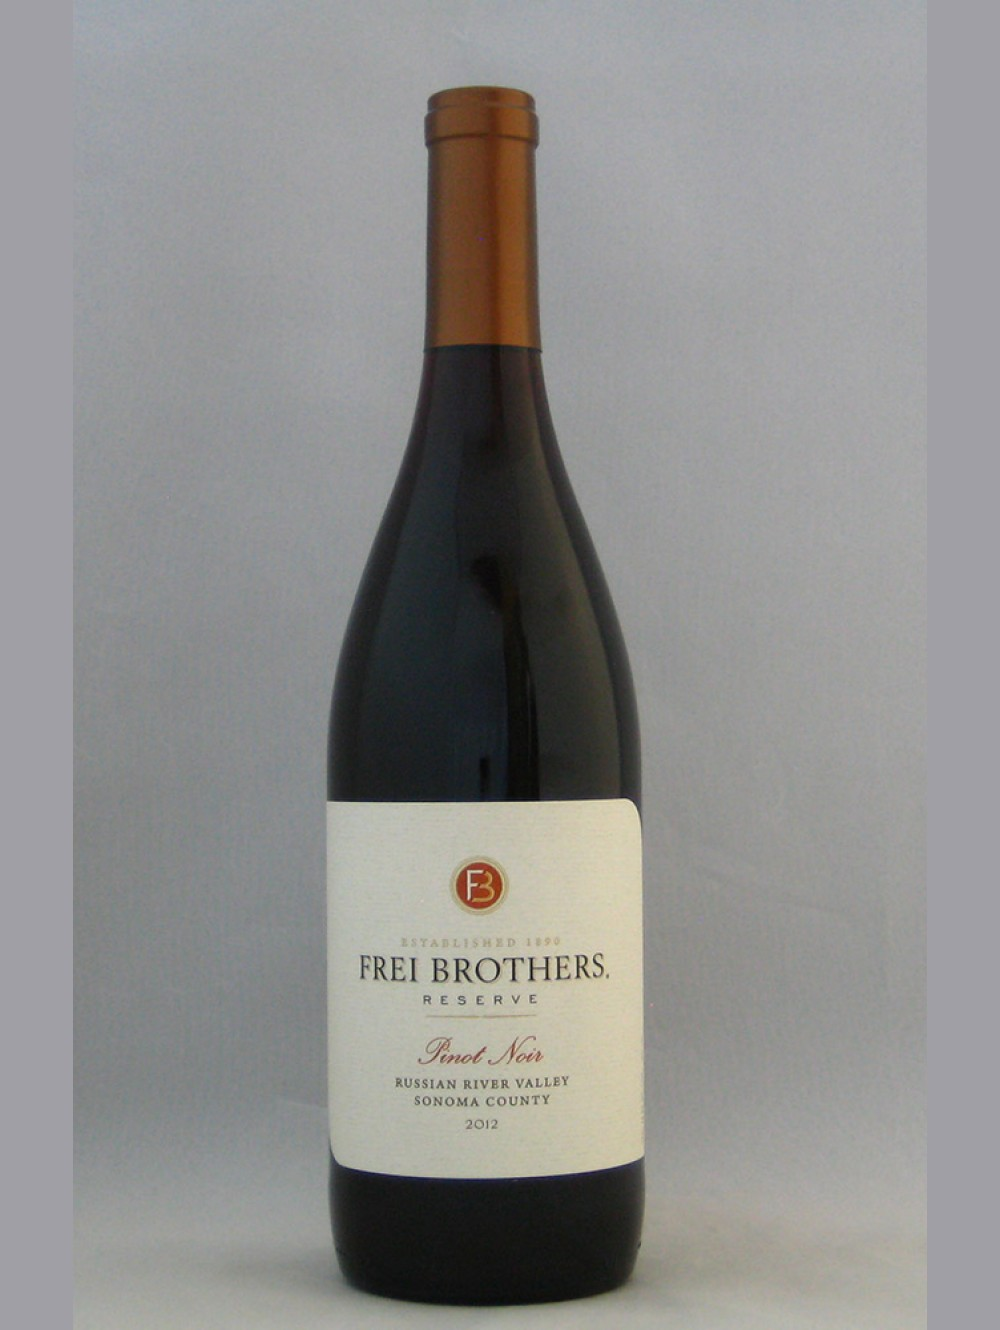 Frei Brothers Pinot Noir Russian River